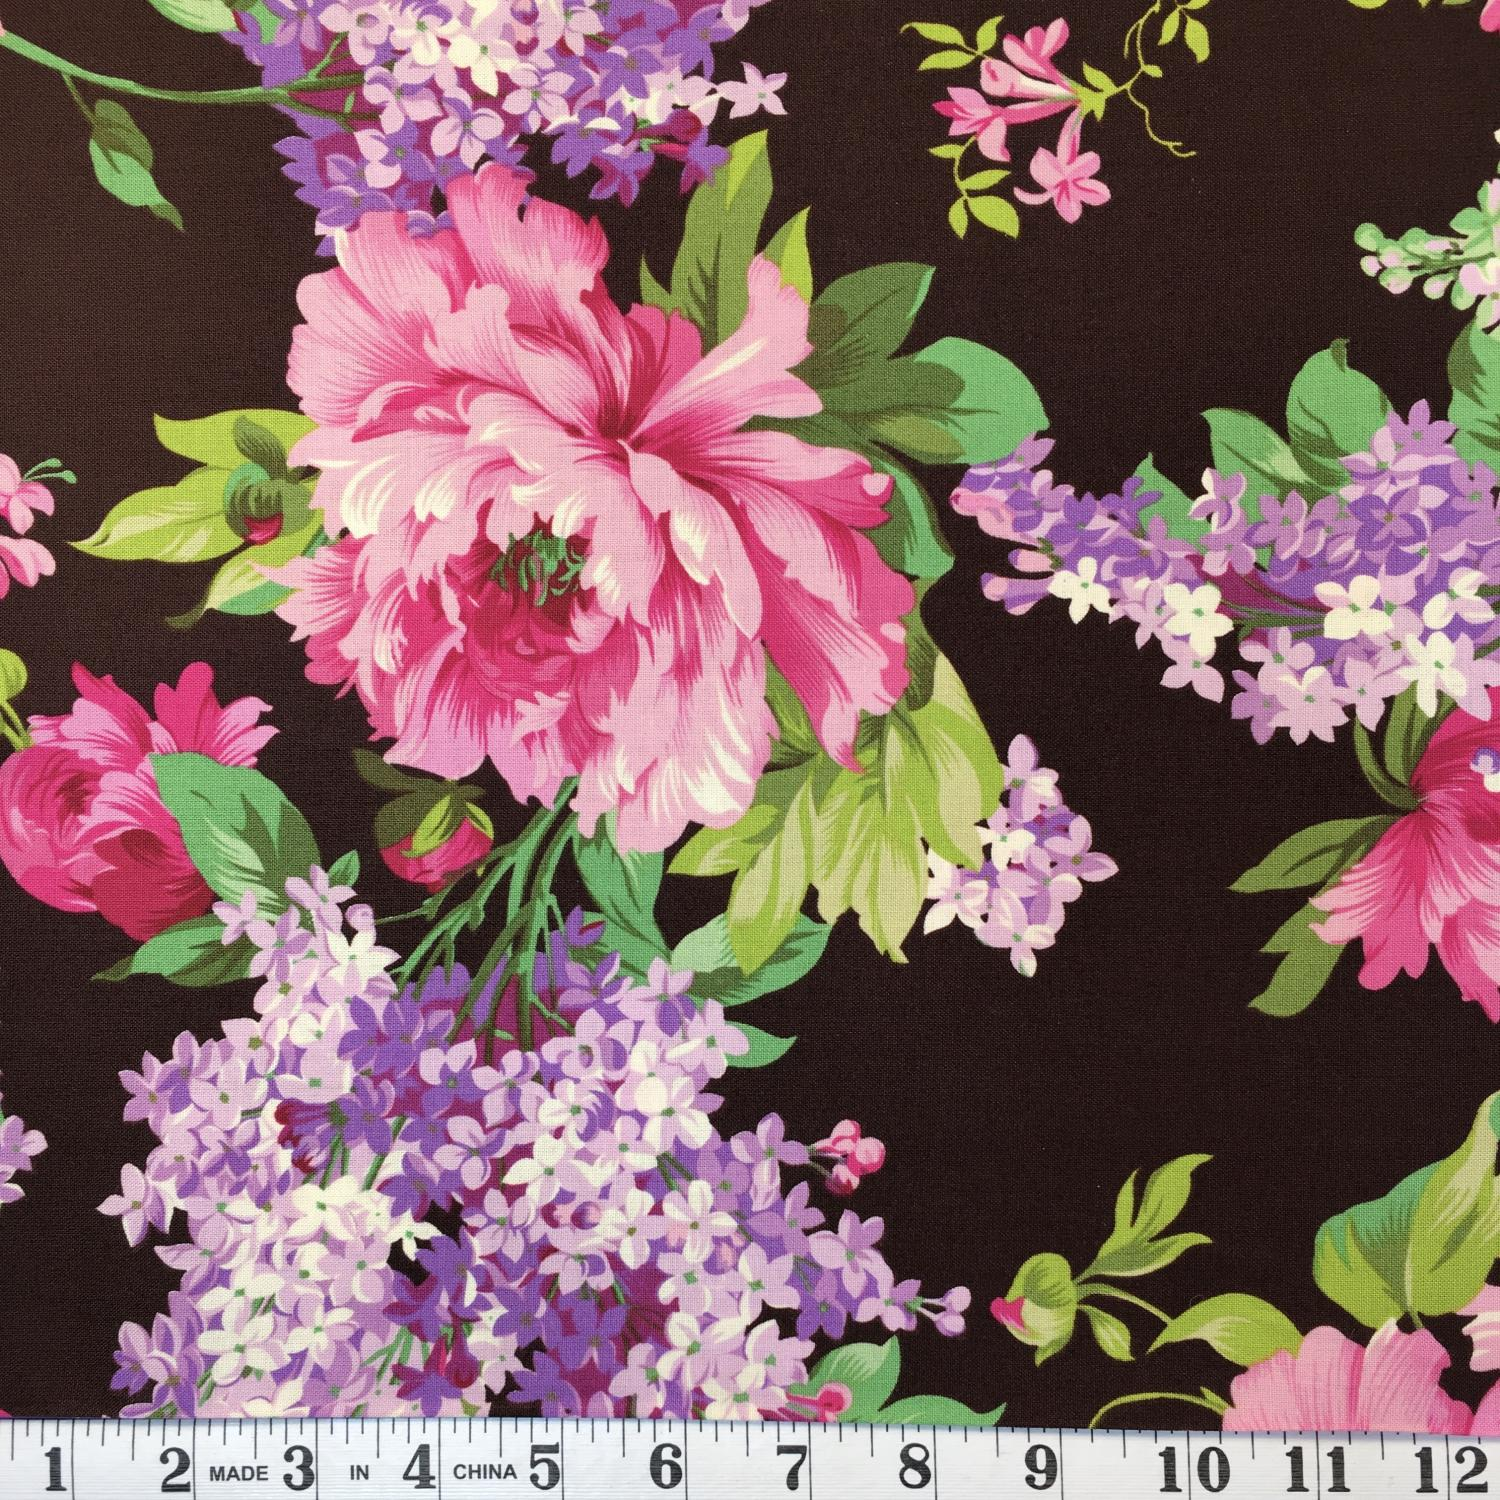 Pink & Lavender Floral on Chocolate Brown